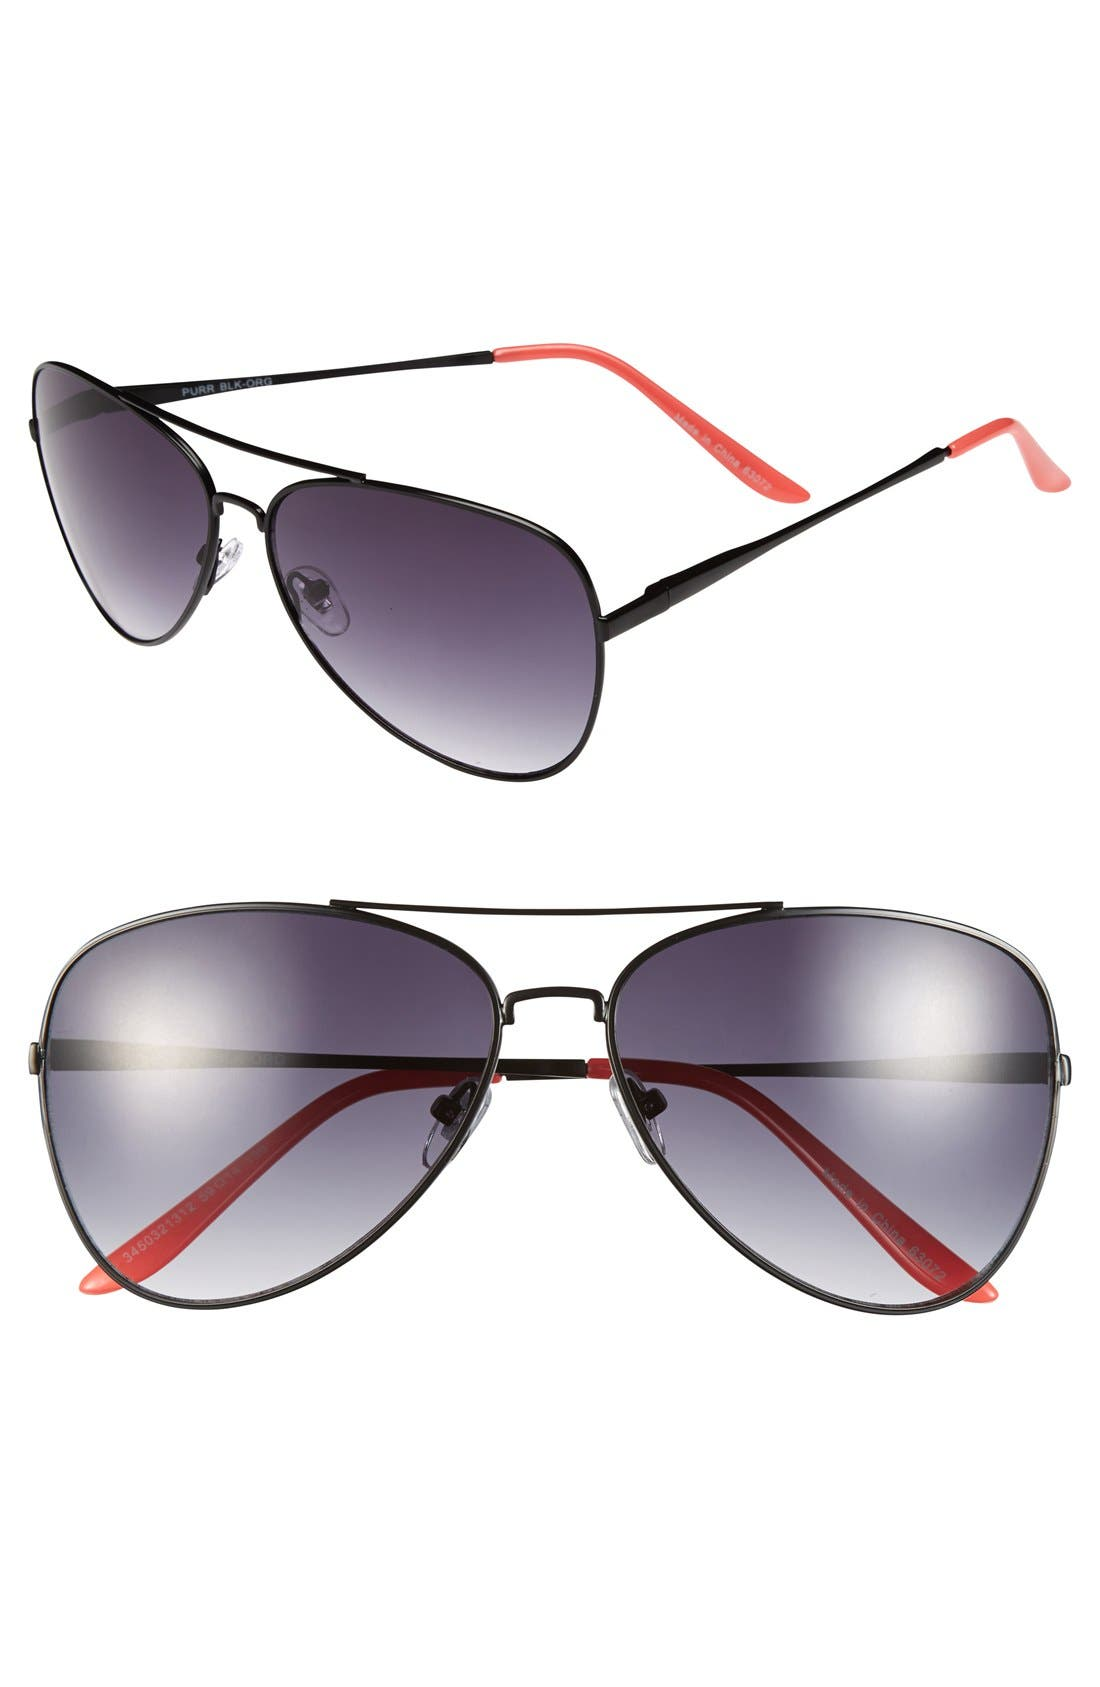 Main Image - Outlook Eyewear 'Purr' 59mm Aviator Sunglasses